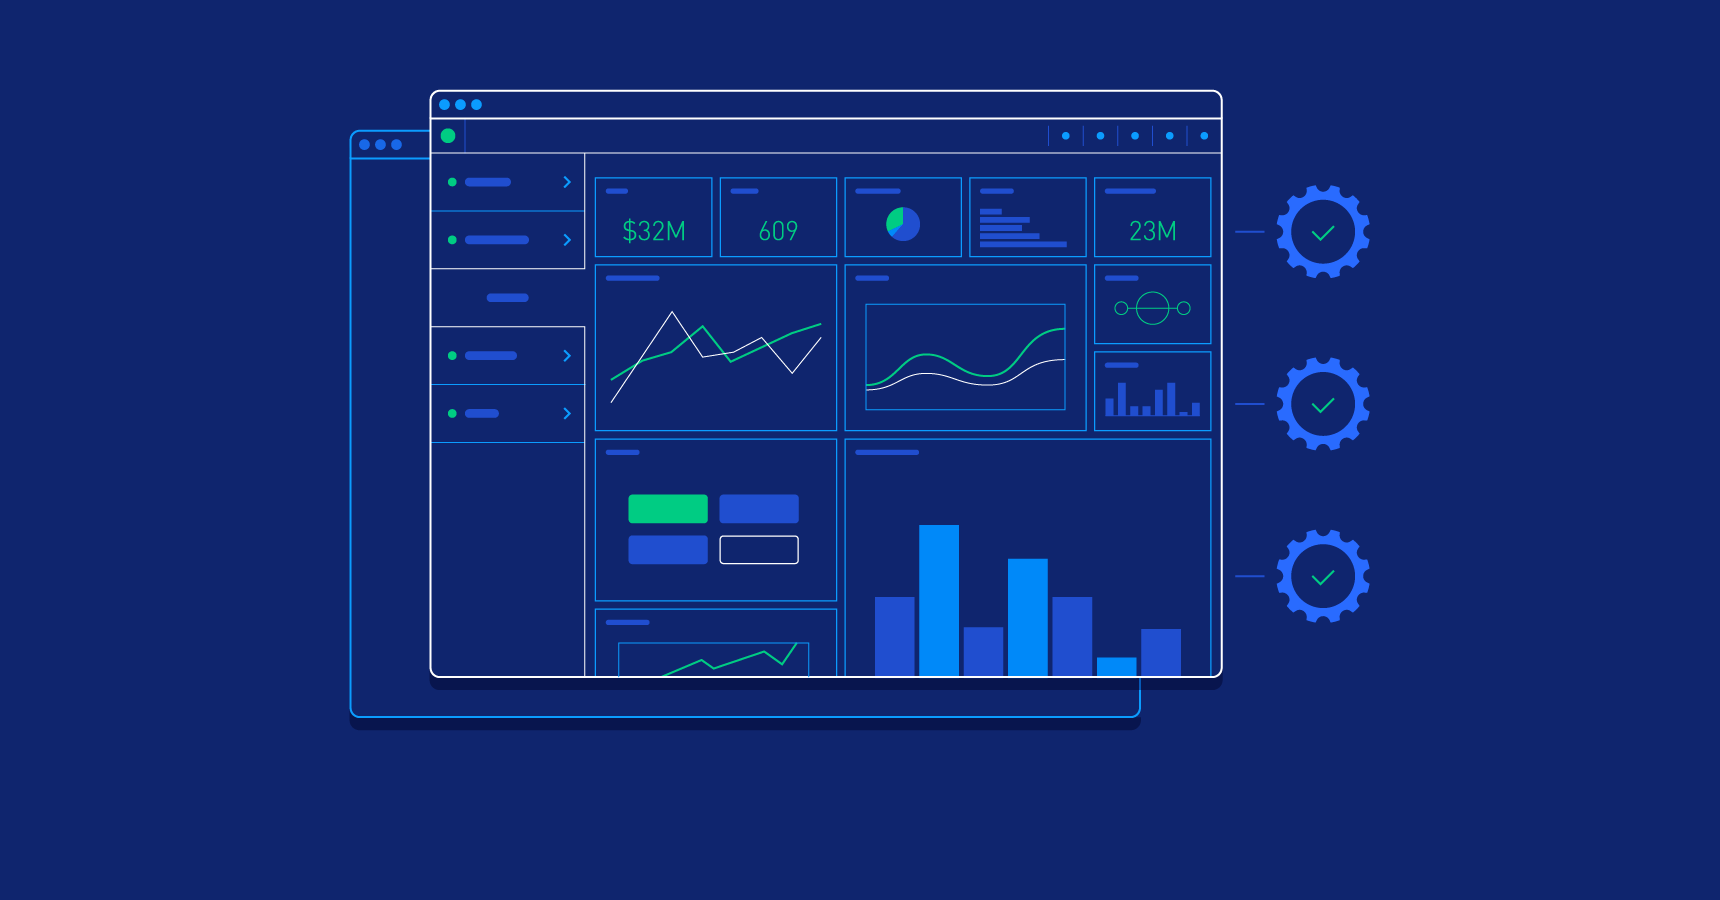 Dashboard Design Considerations And Best Practices Toptal